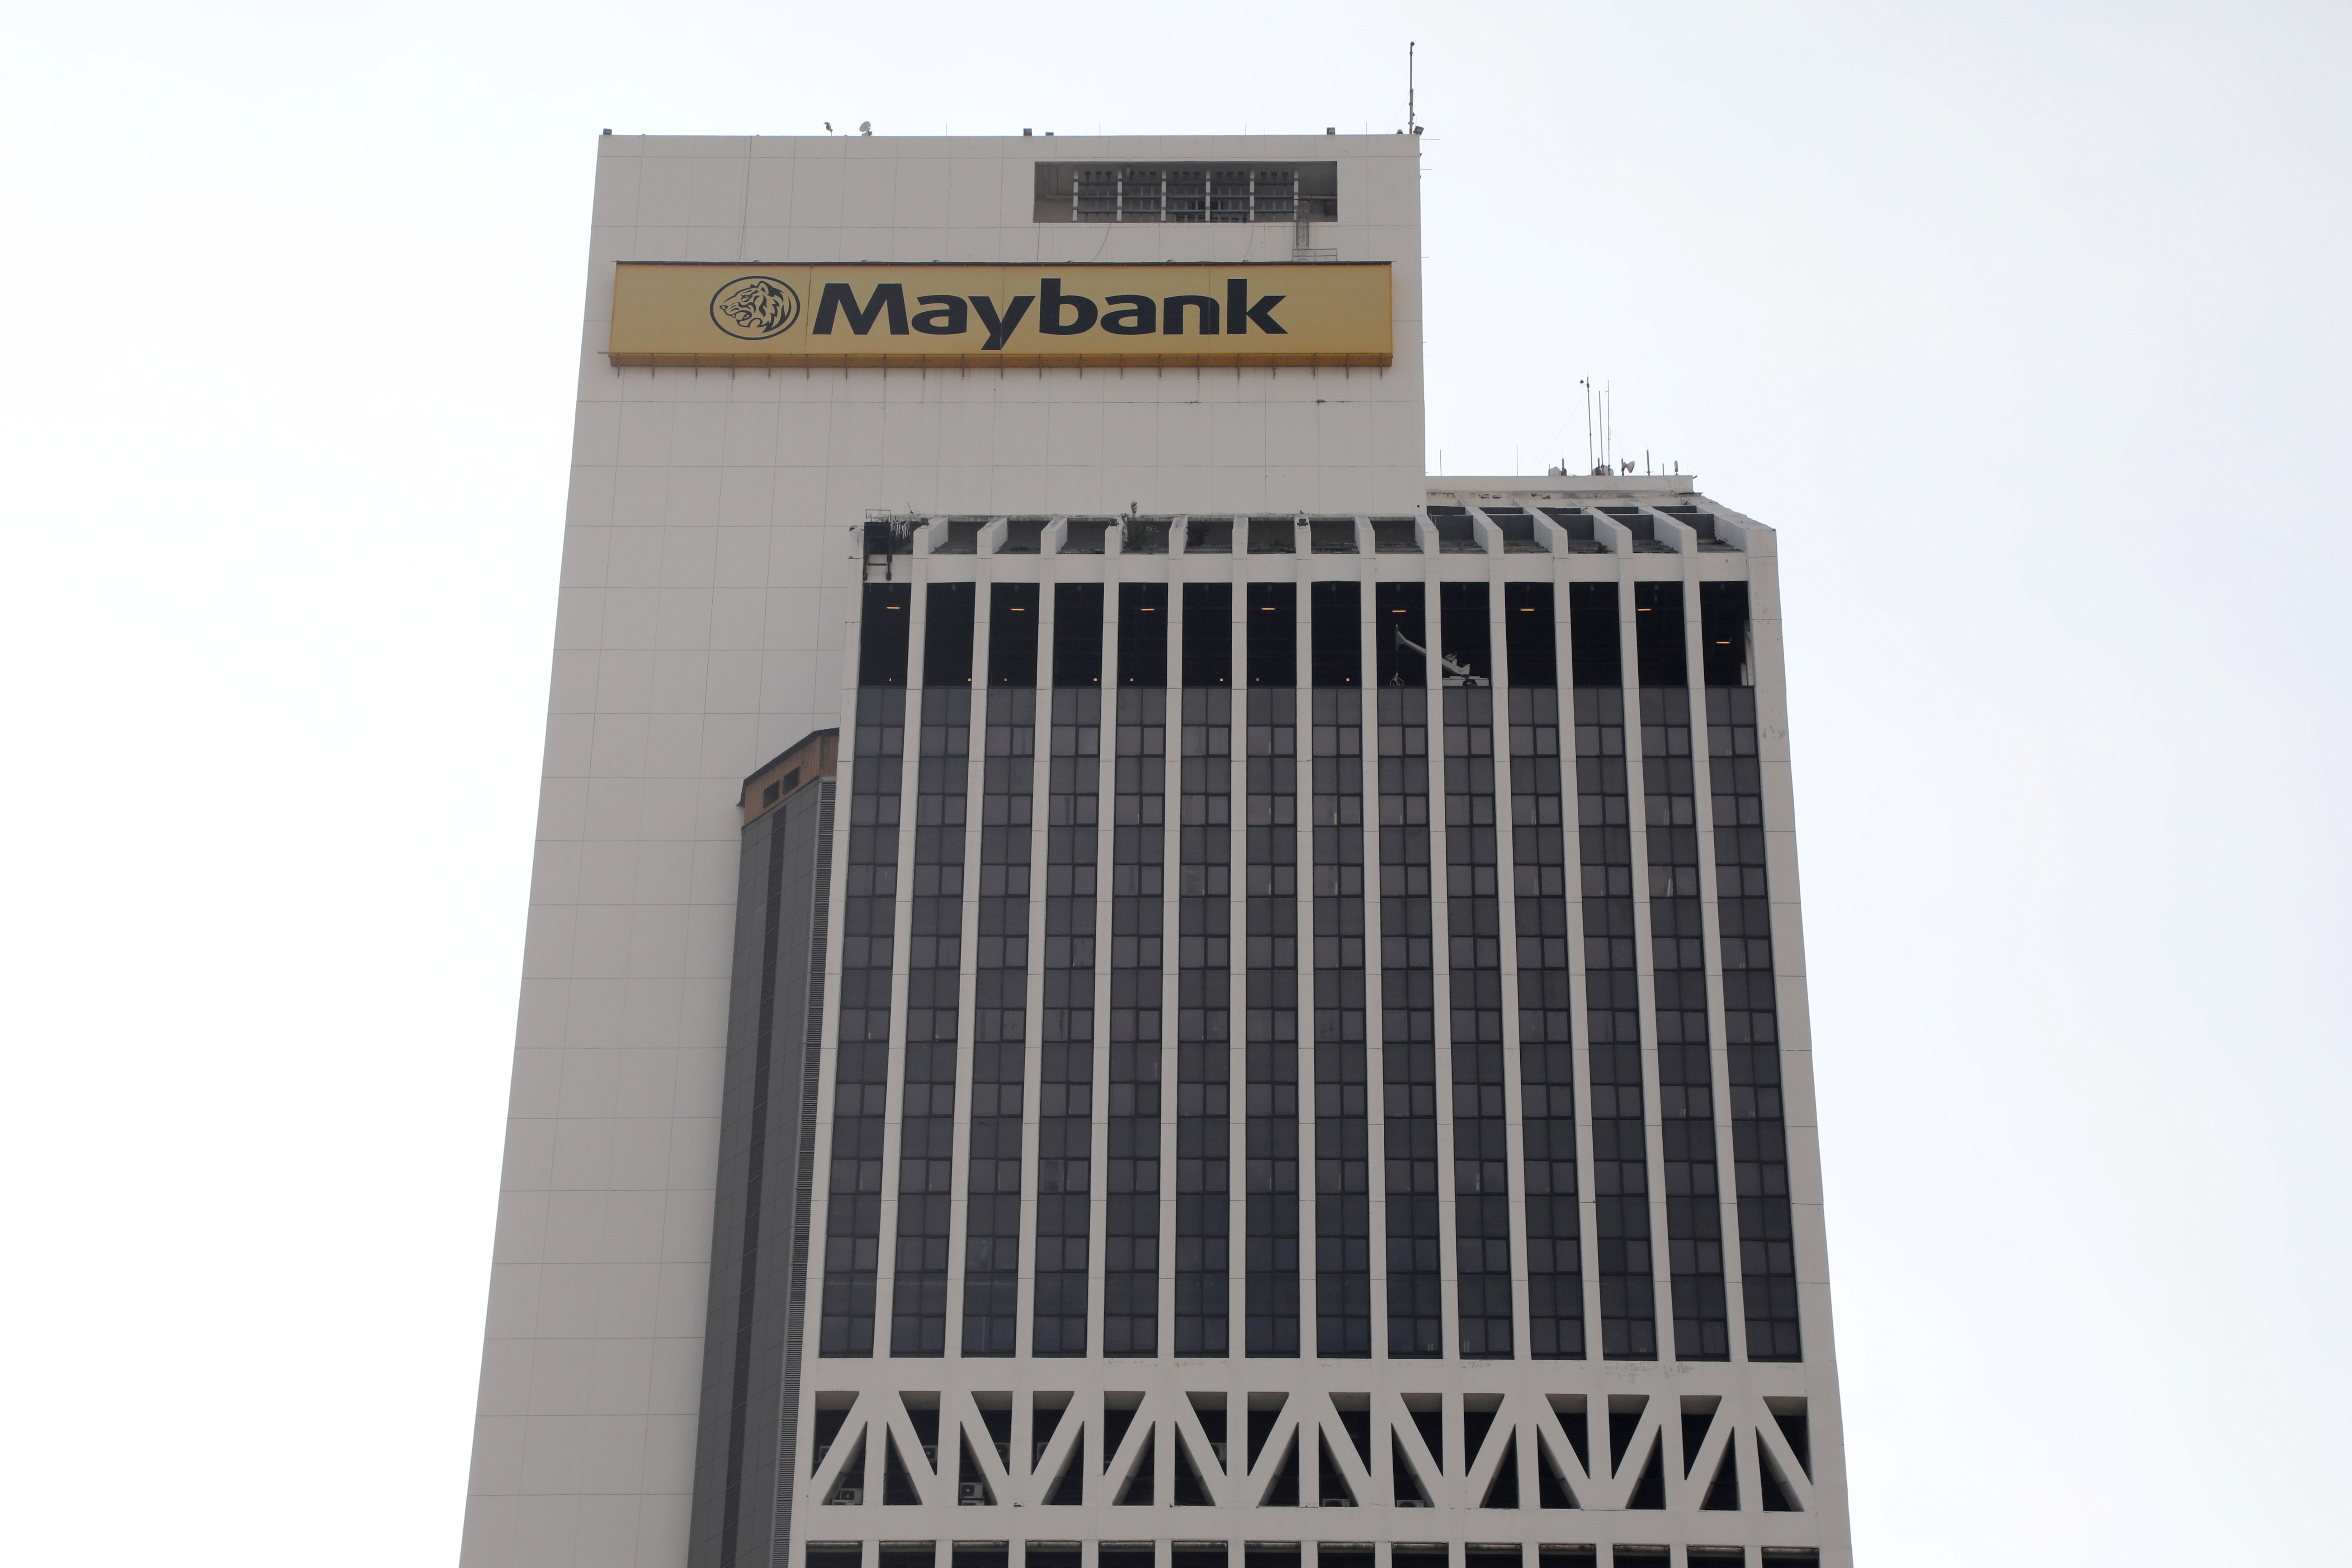 Maybank Tower, the headquarters of Maybank, is pictured in Kuala Lumpur, Malaysia, July 19, 2019. REUTERS/Lim Huey Teng